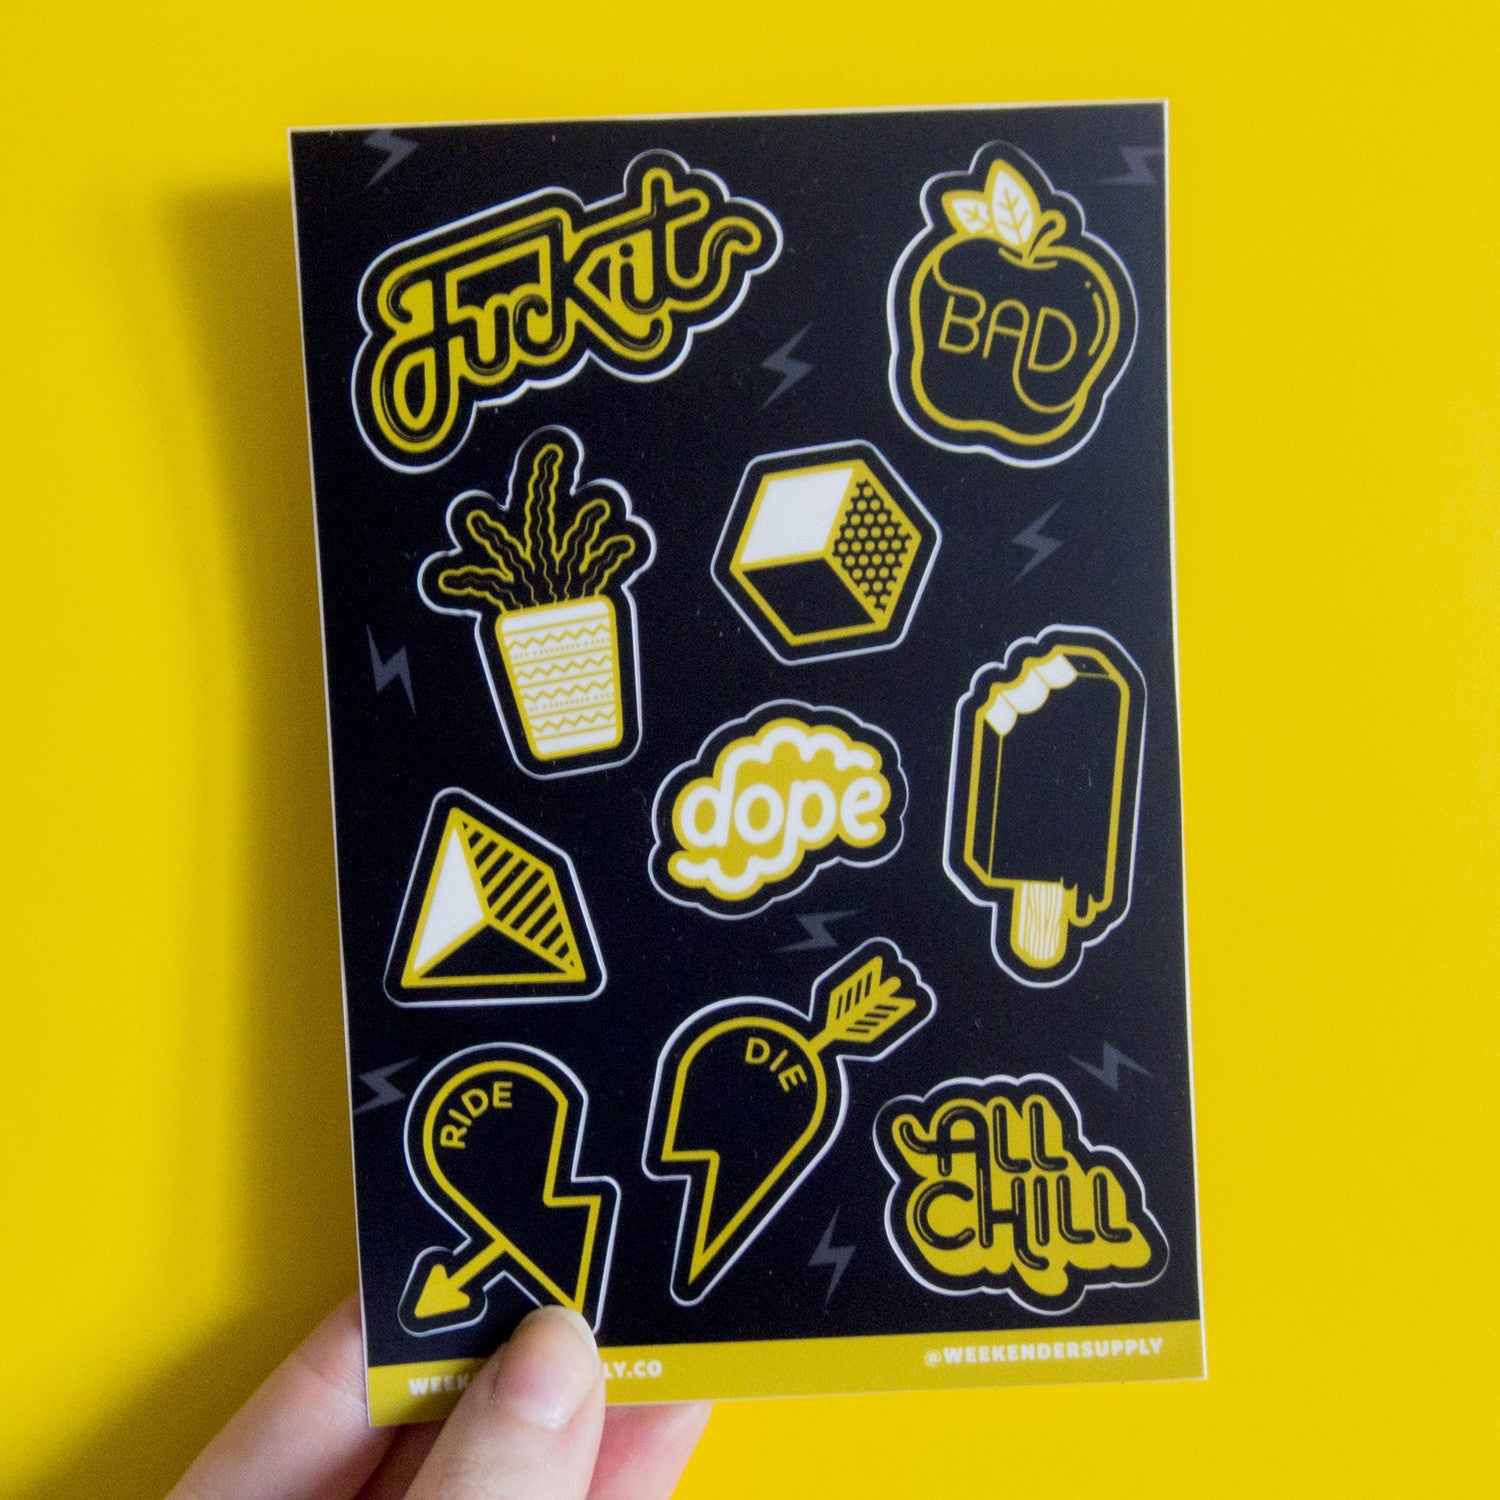 Weekender Supply Vinyl Sticker Sheet